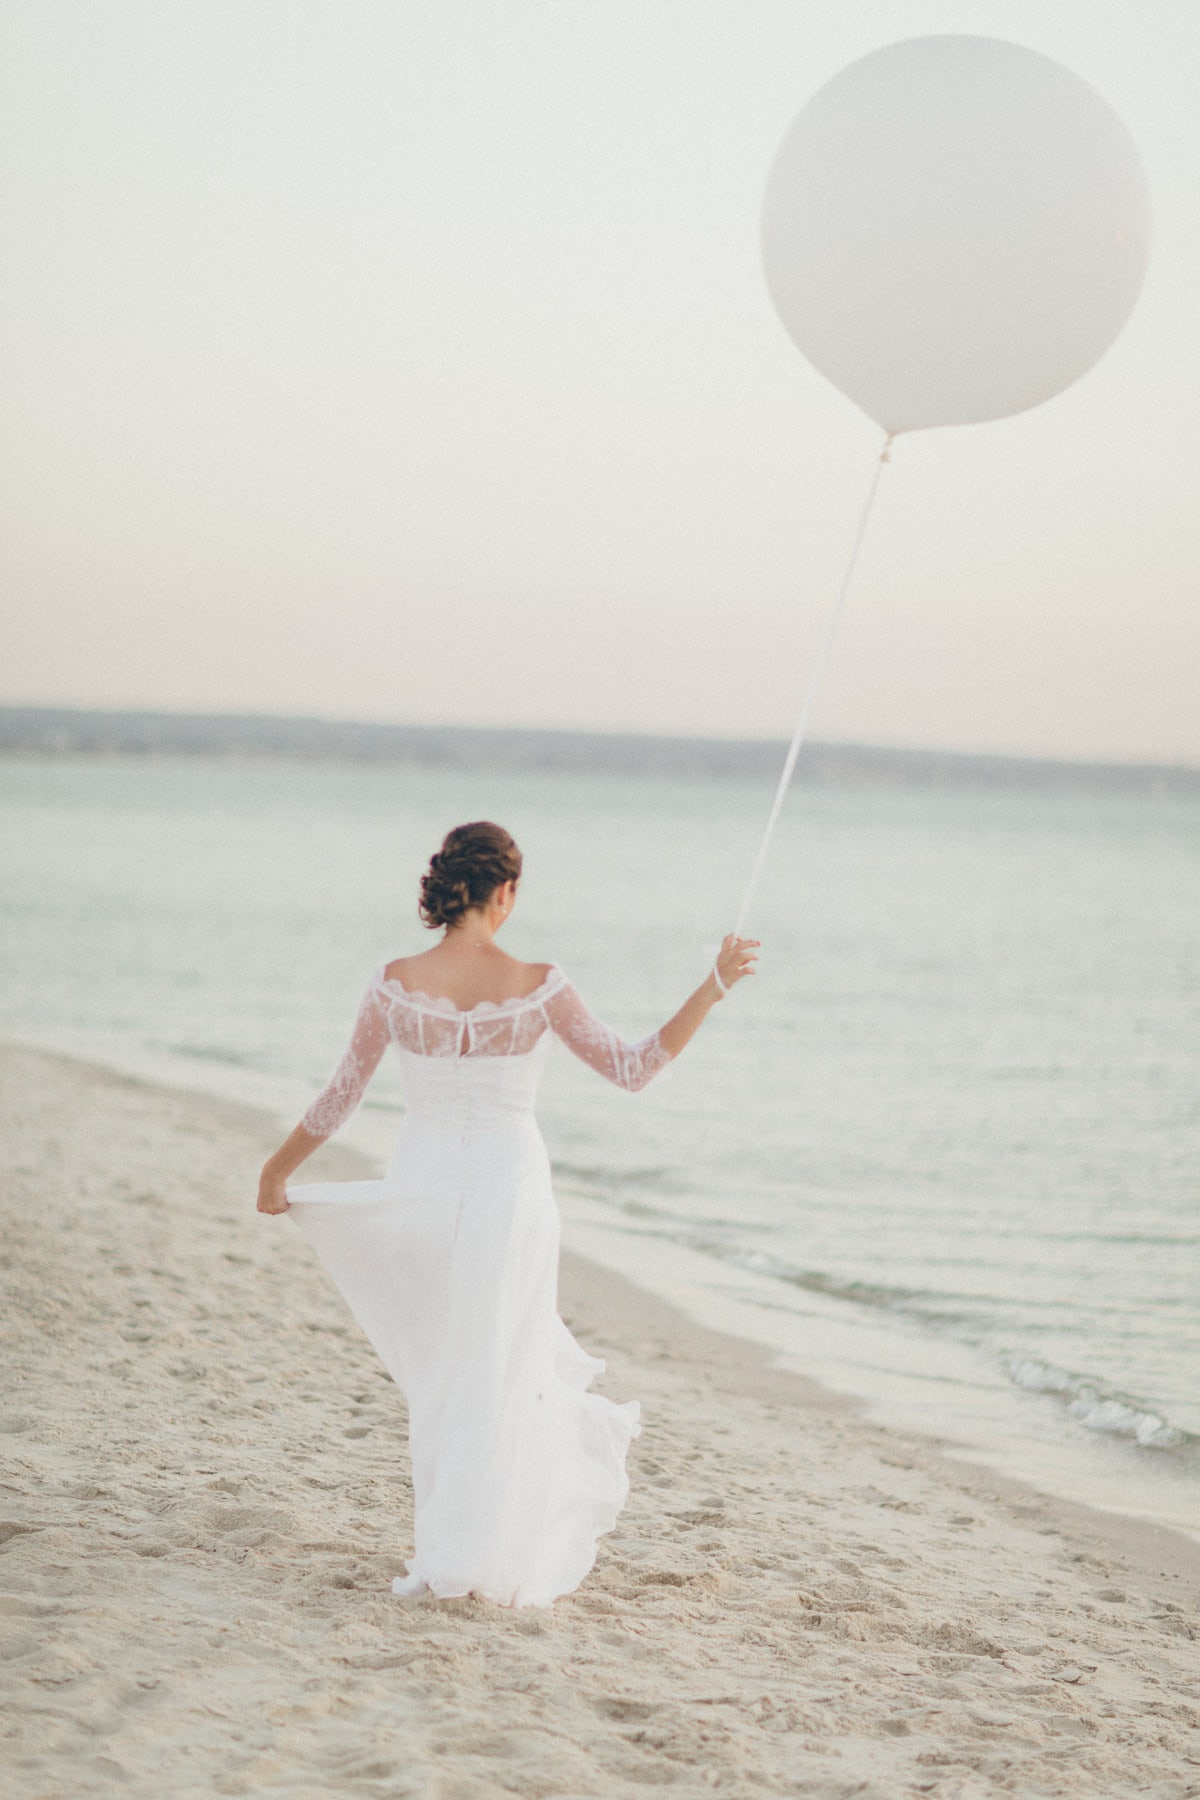 bride walking along the beach with oversized white balloon - wedding photo in melbourne - melbourne beach side brighton sandringham elwood